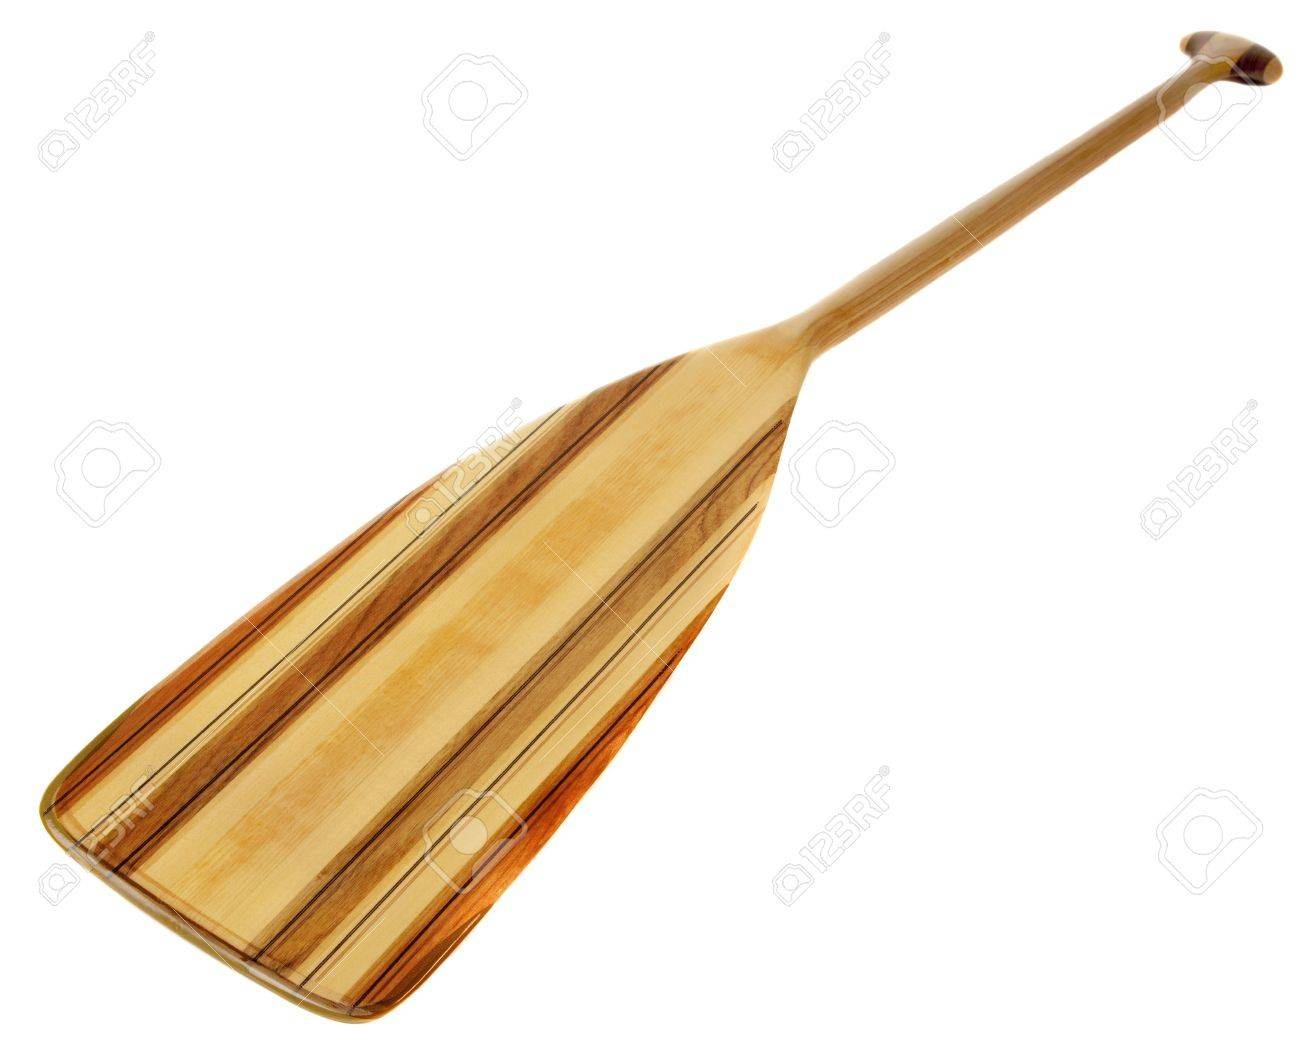 wooden (basswood, butternut and red alder)) cruising canoe paddle with bent shaft and tip reinforced with fiberglass, isolated on white Stock Photo - 7765903